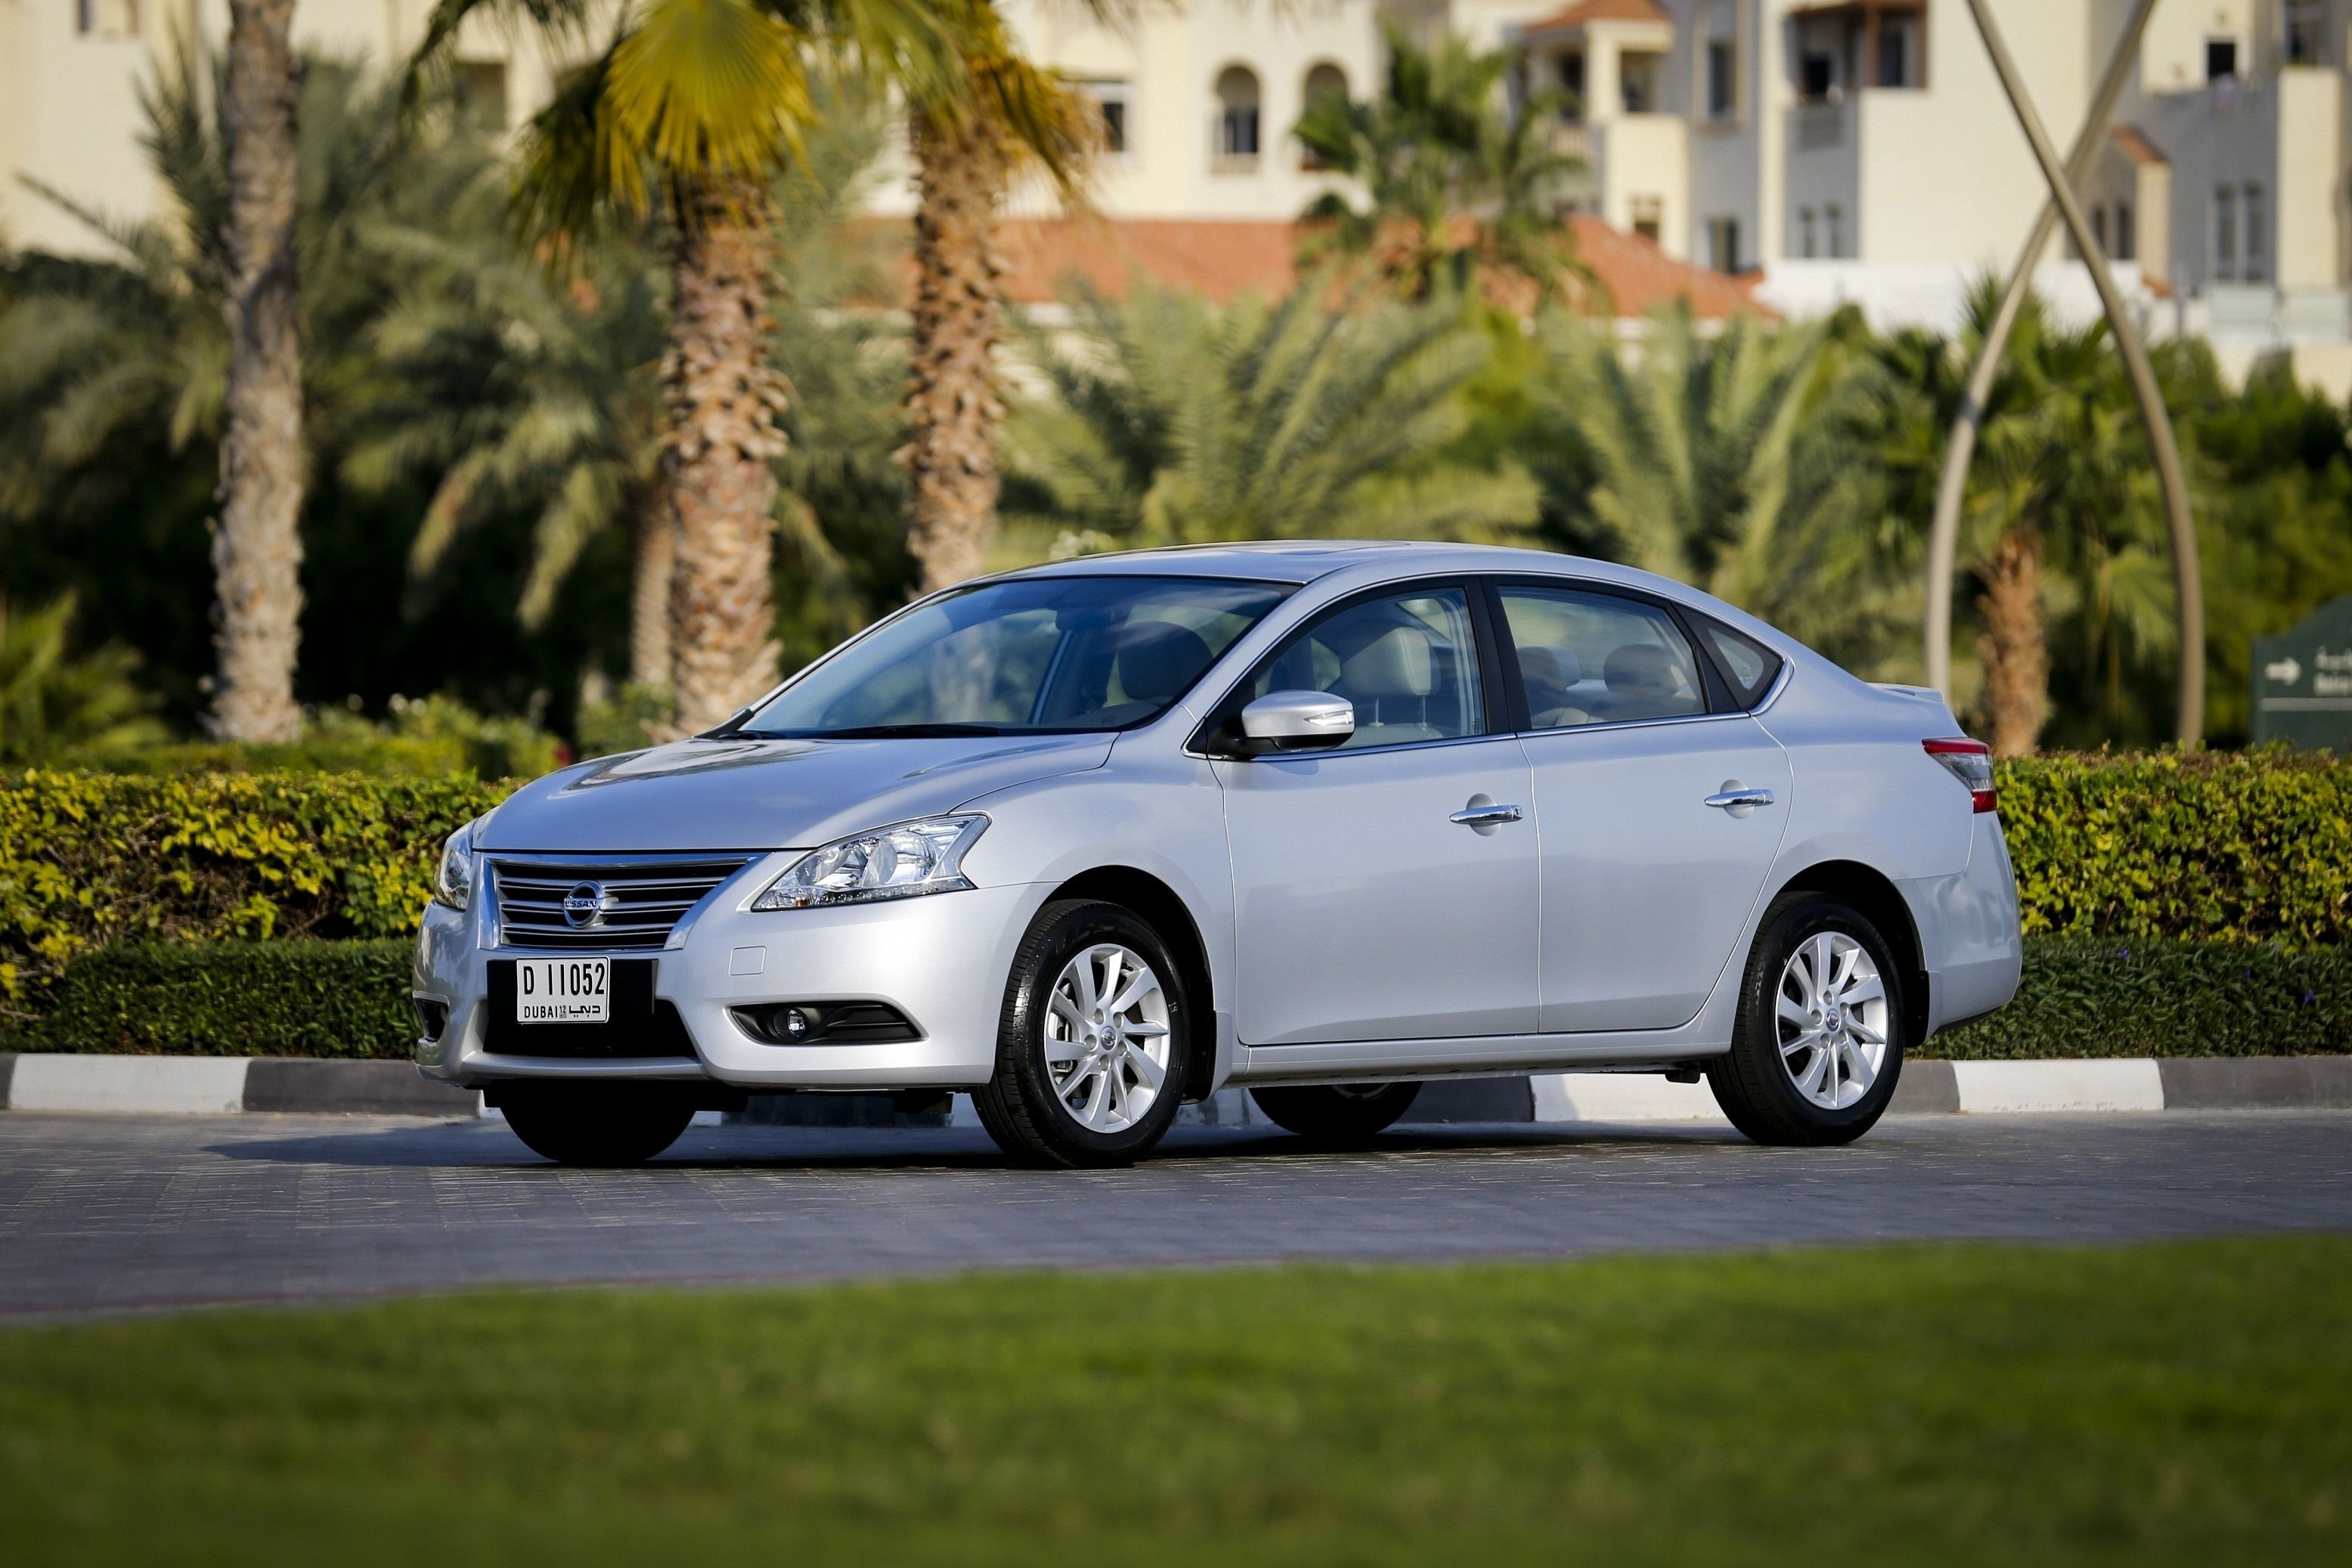 15 A 2020 Nissan Sunny Uae Egypt New Concept